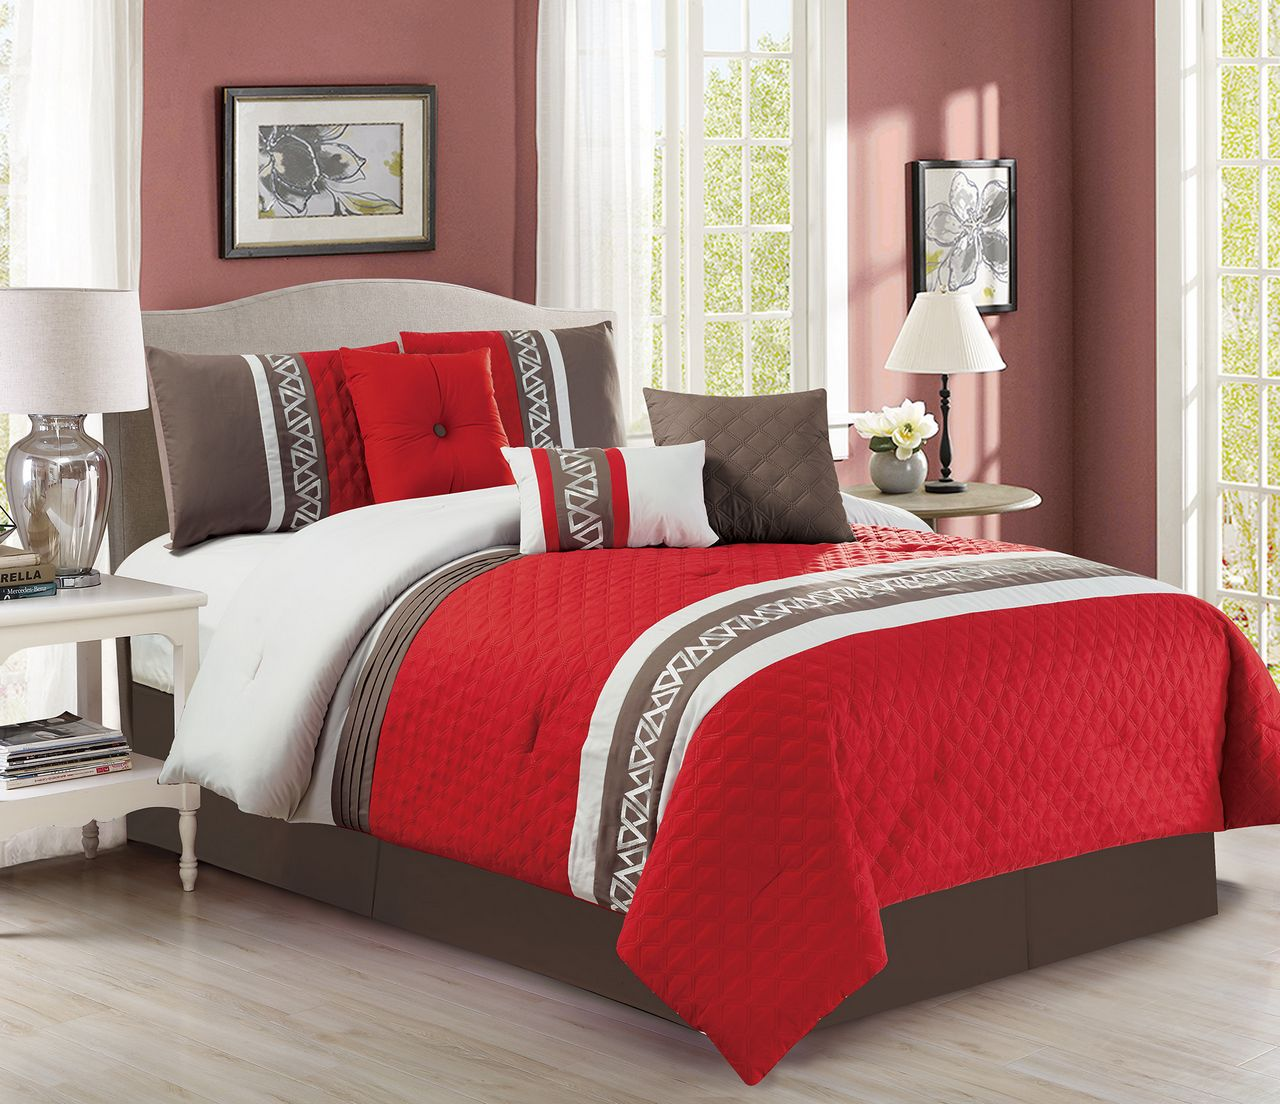 7 Piece Diamond Quilted Red/Taupe Comforter Set King